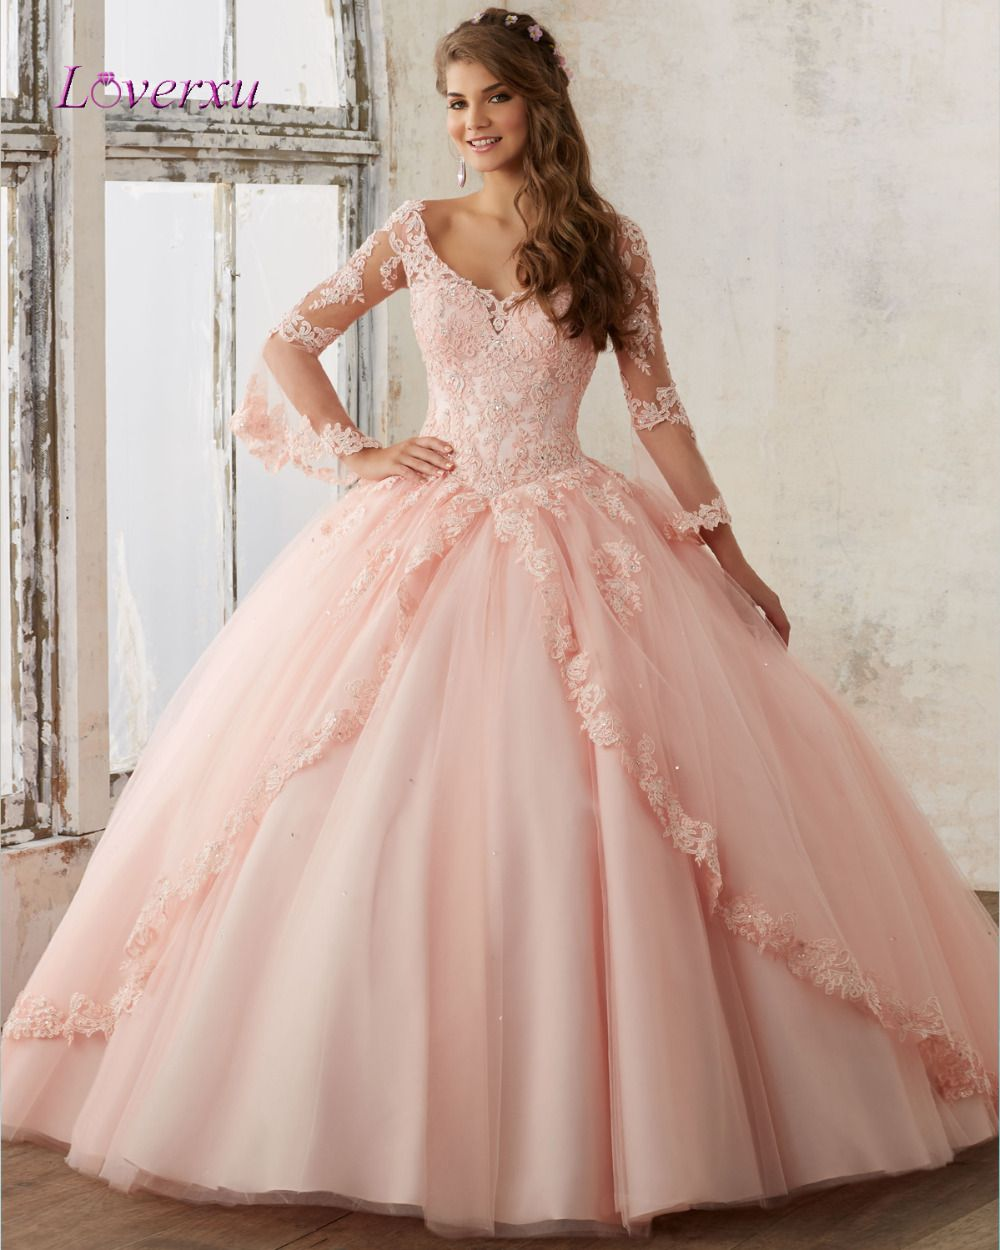 Loverxu Elegant Long Sleeve Ball Gown Quinceanera Dress 2017 ...